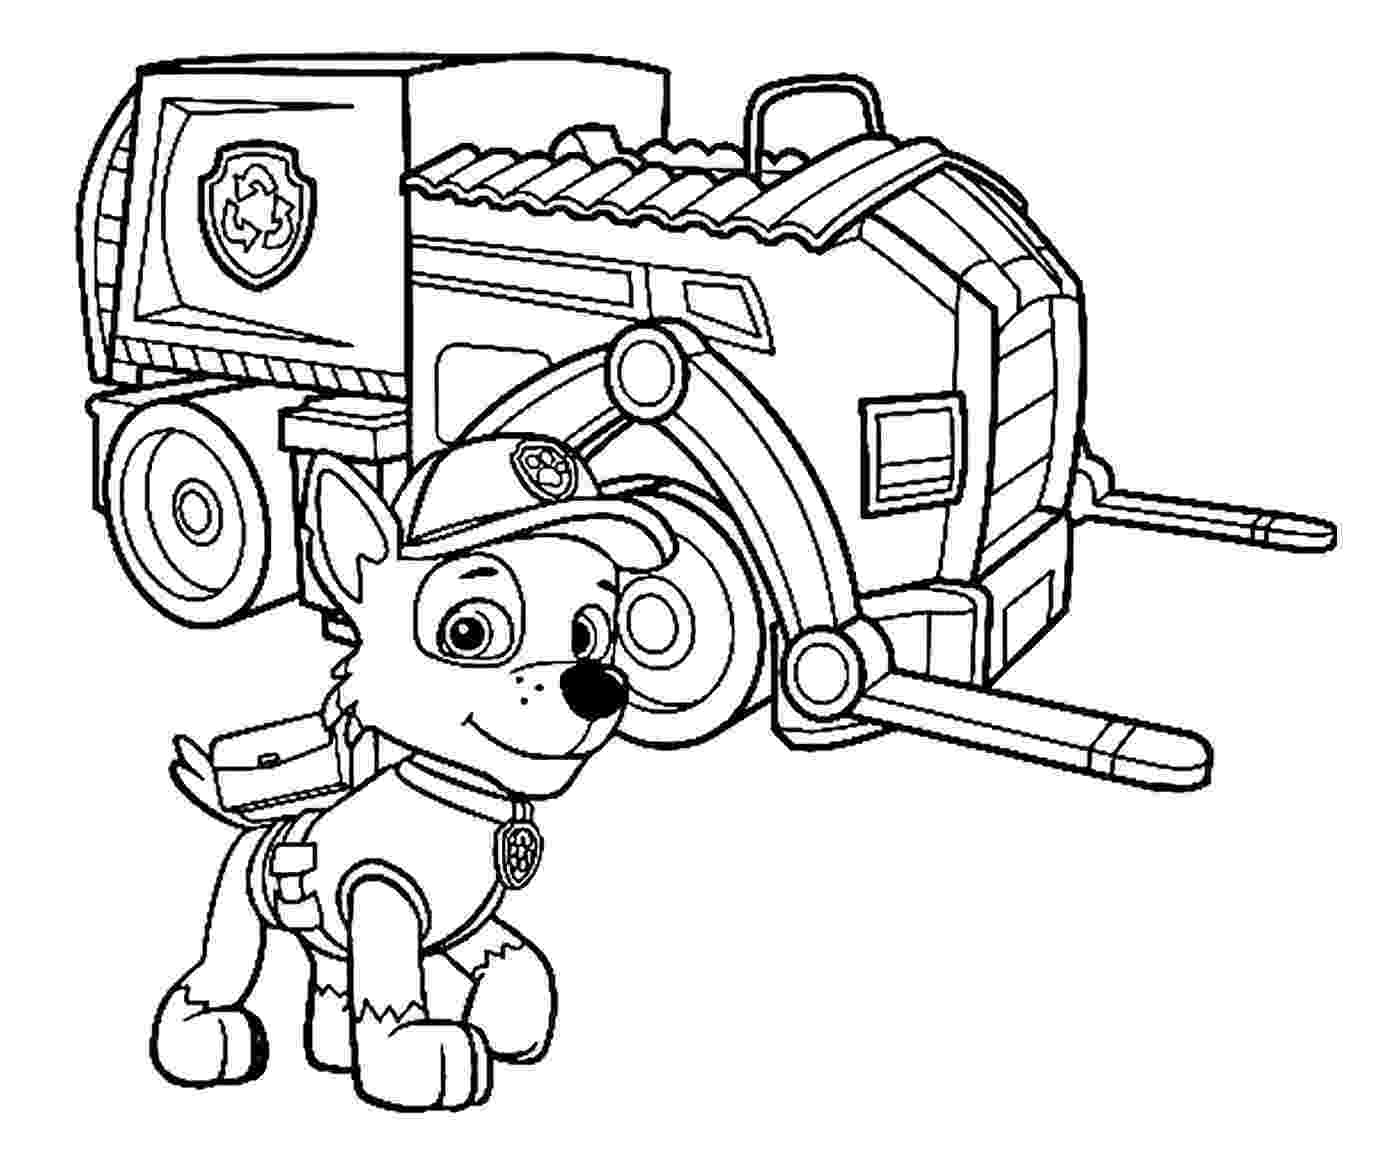 paw patrol coloriage paw patrol to print for free paw patrol kids coloring pages paw patrol coloriage